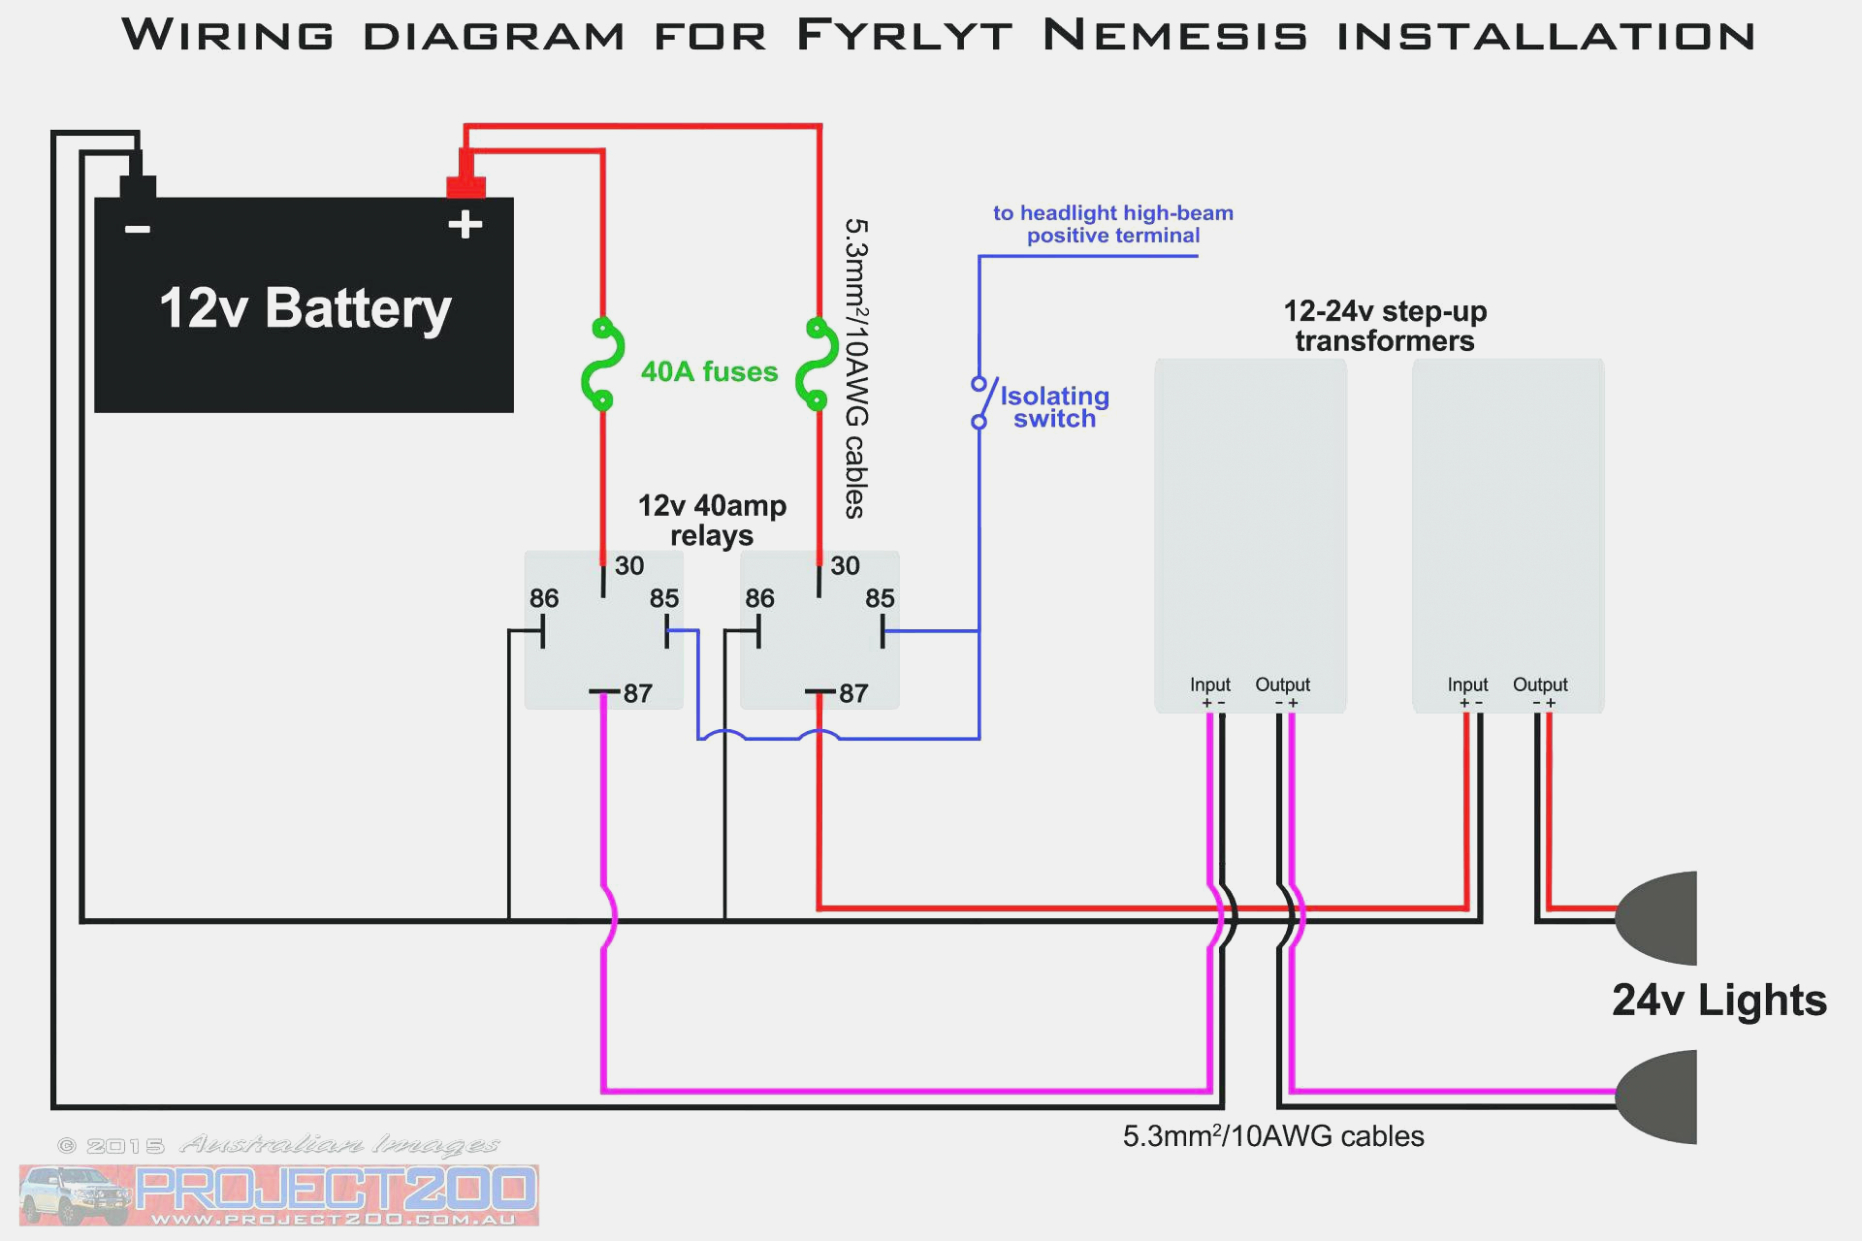 Basic Schematic For Typical Pool Light Wiring | Wiring Diagram - Pool Light Wiring Diagram